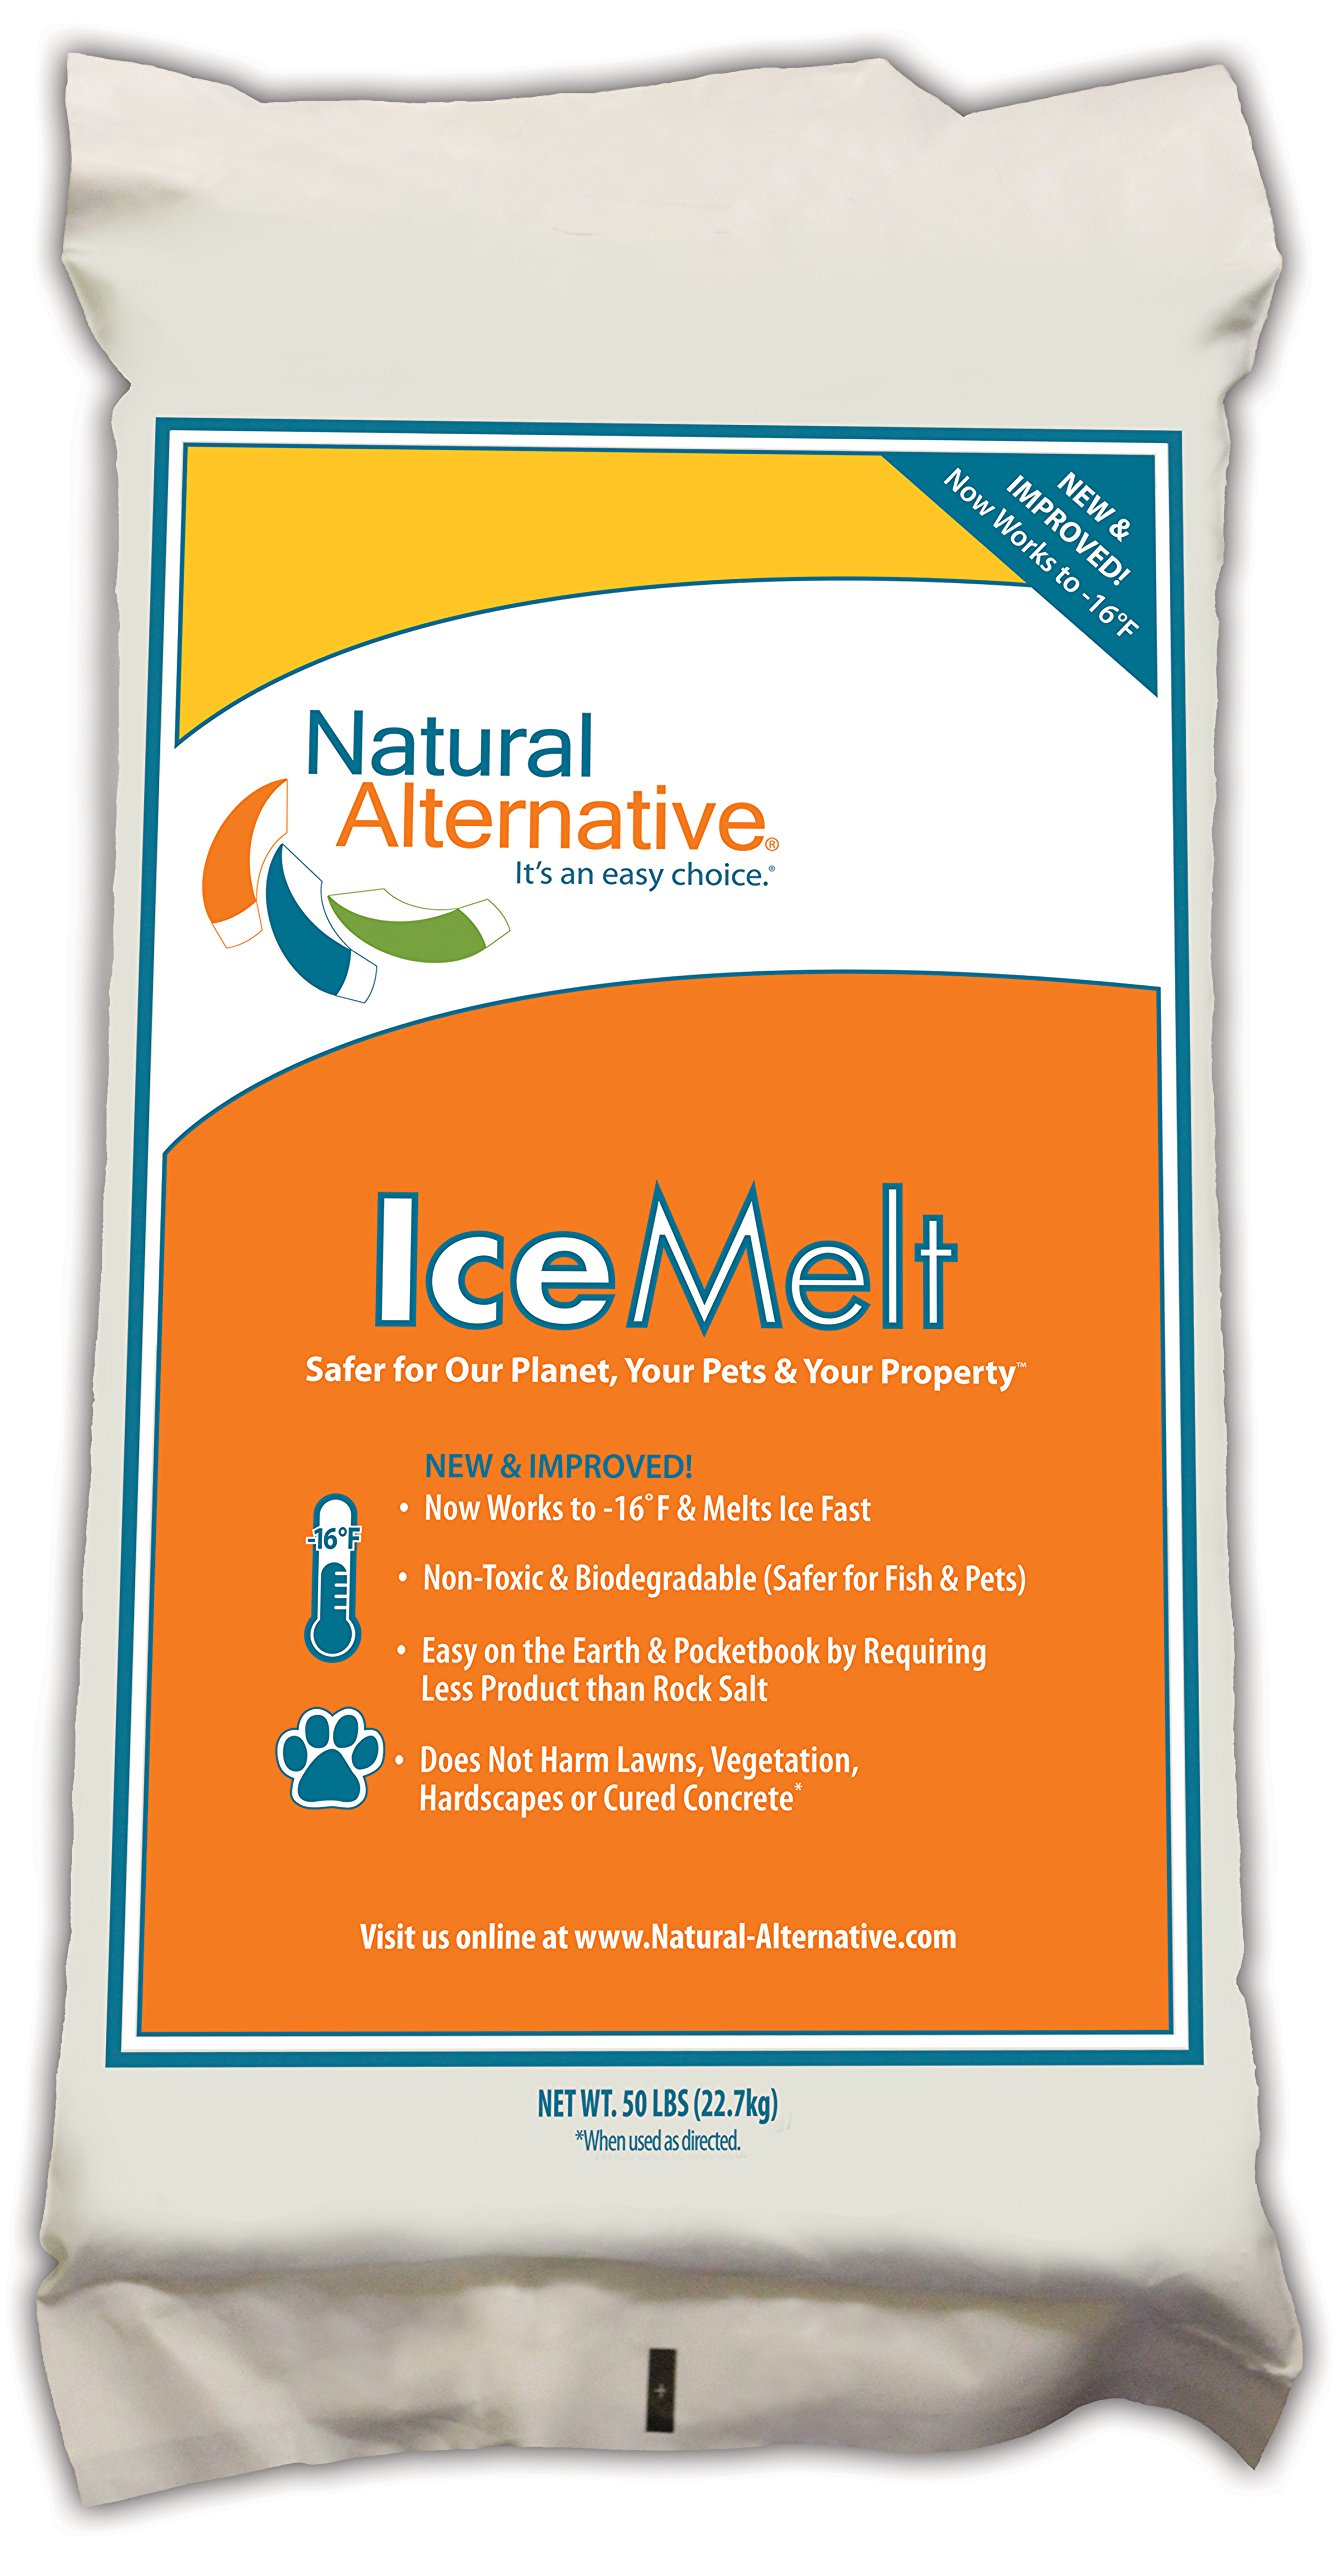 Natural Alternative Ice Melt Another NATURLAWN Product - 50 Lb Bag - Safer for Pets, Property & the Environment